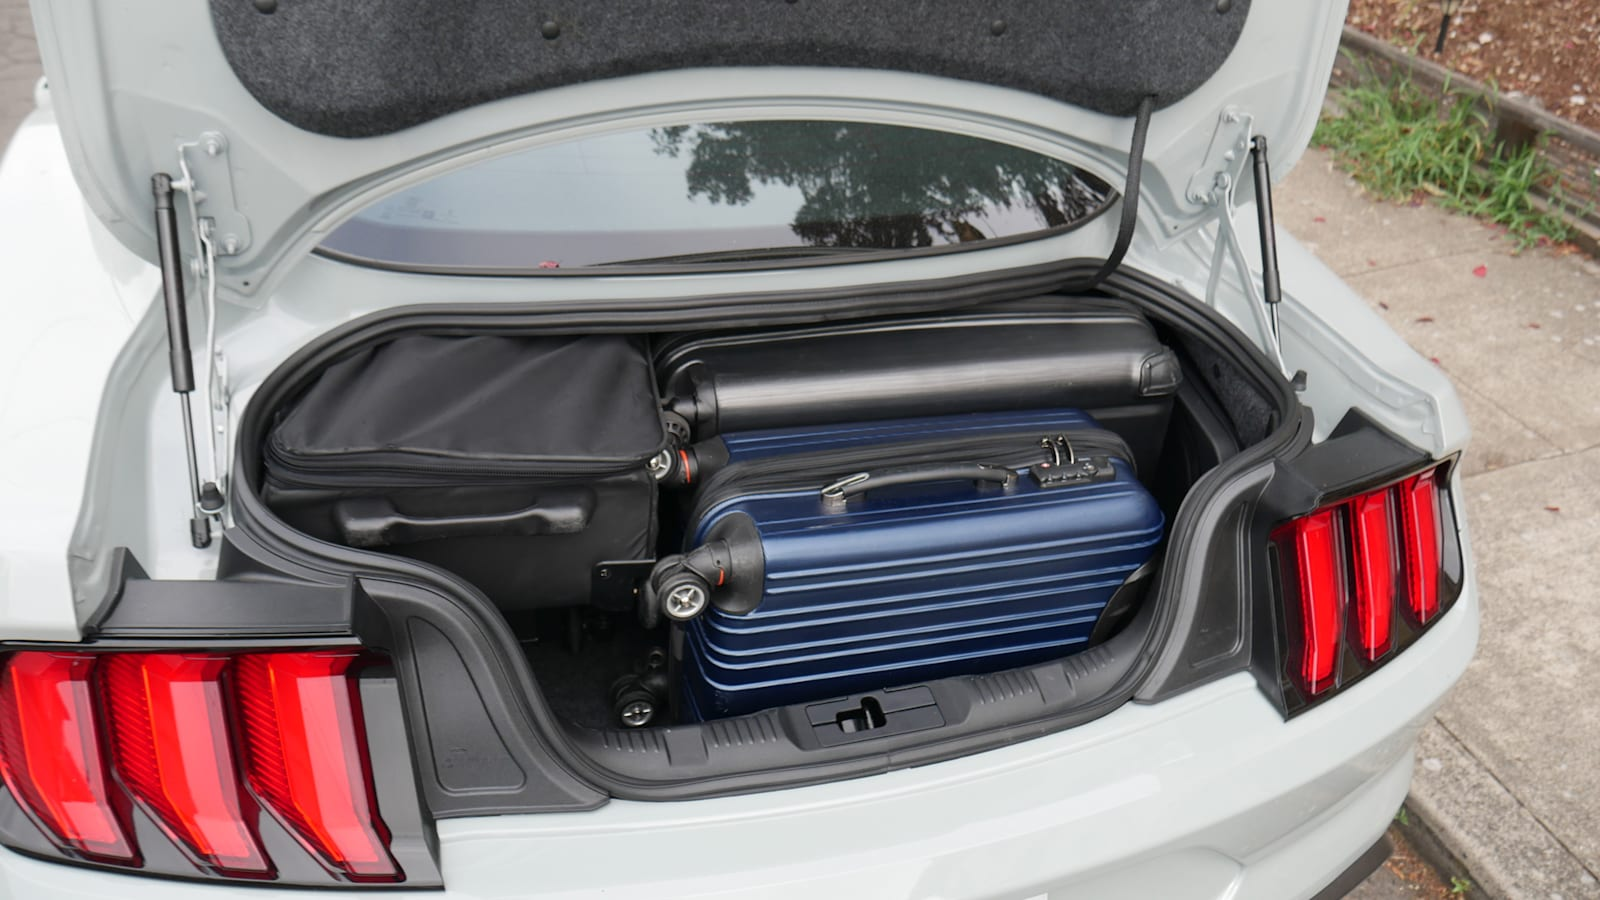 2021 Ford Mustang Luggage Test all the bags fit